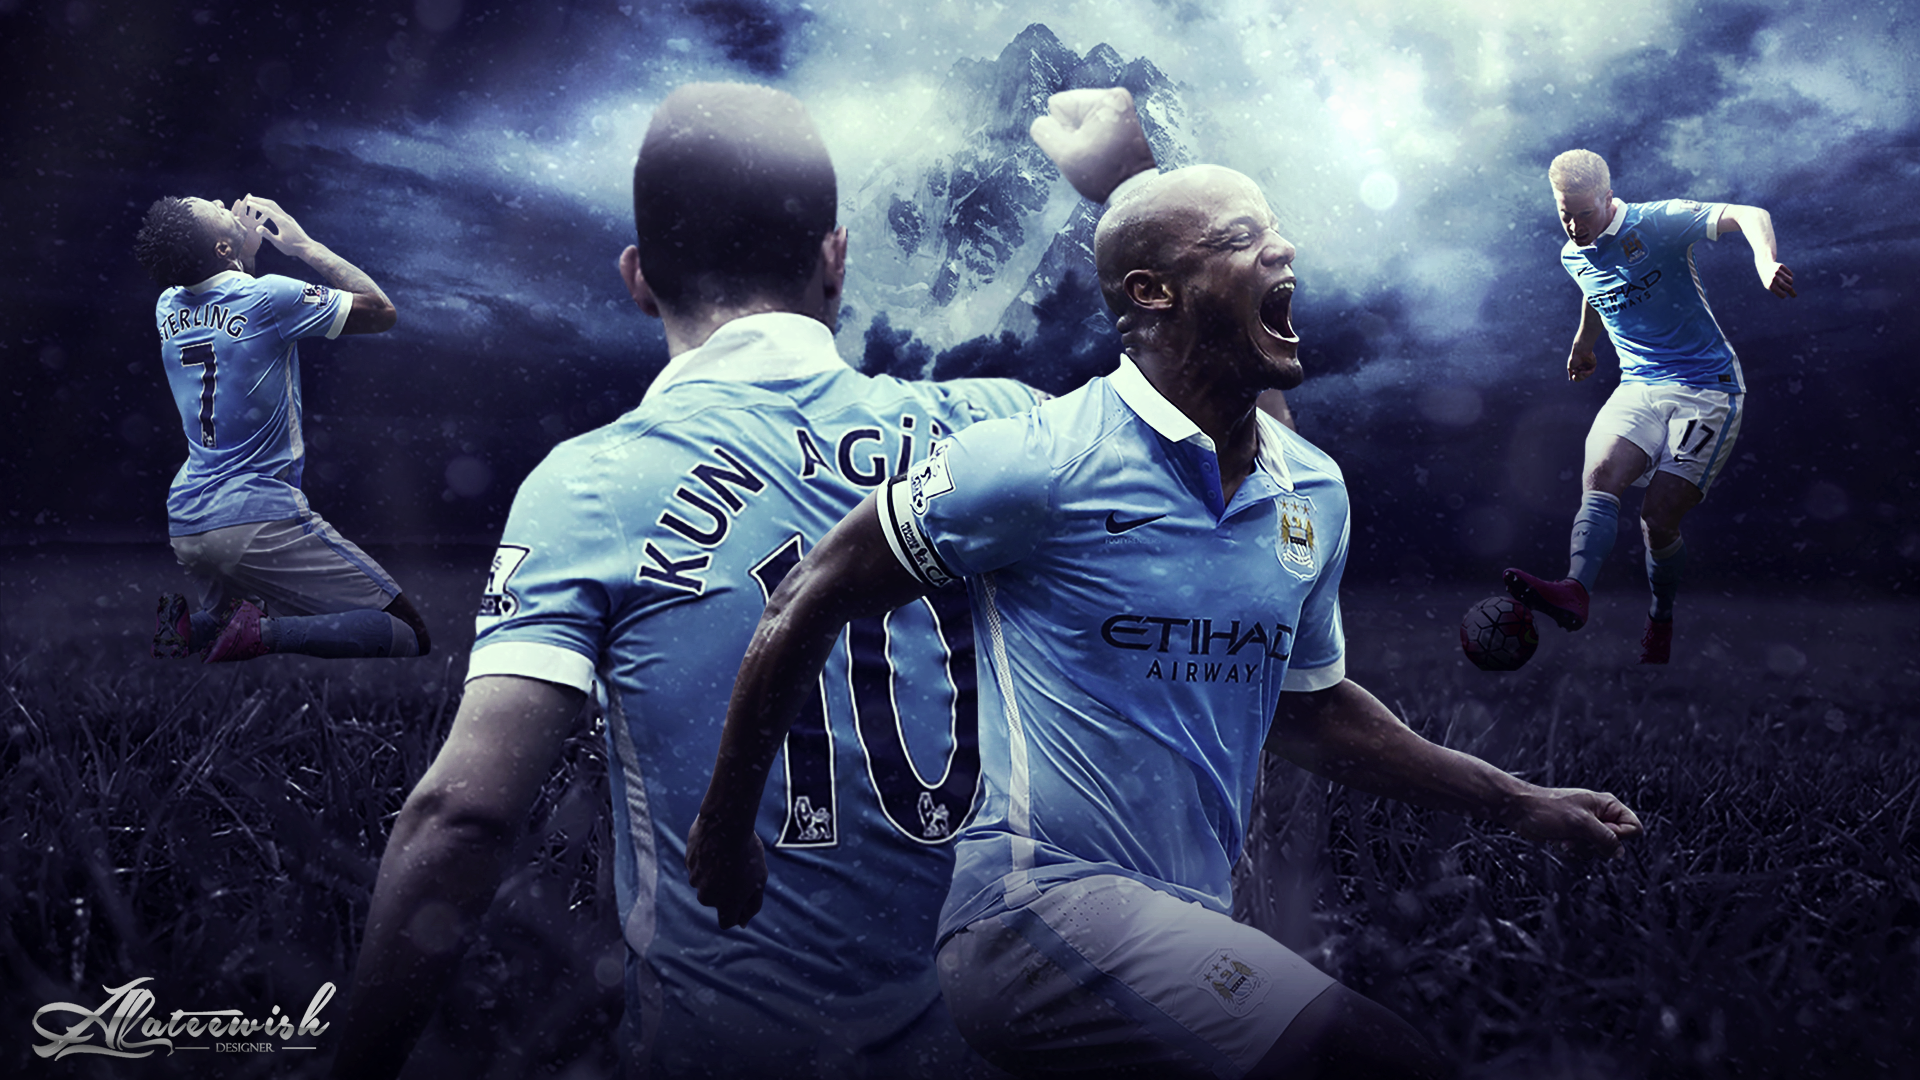 Man City Wallpapers 2015: 1920x1080px Manchester City Background